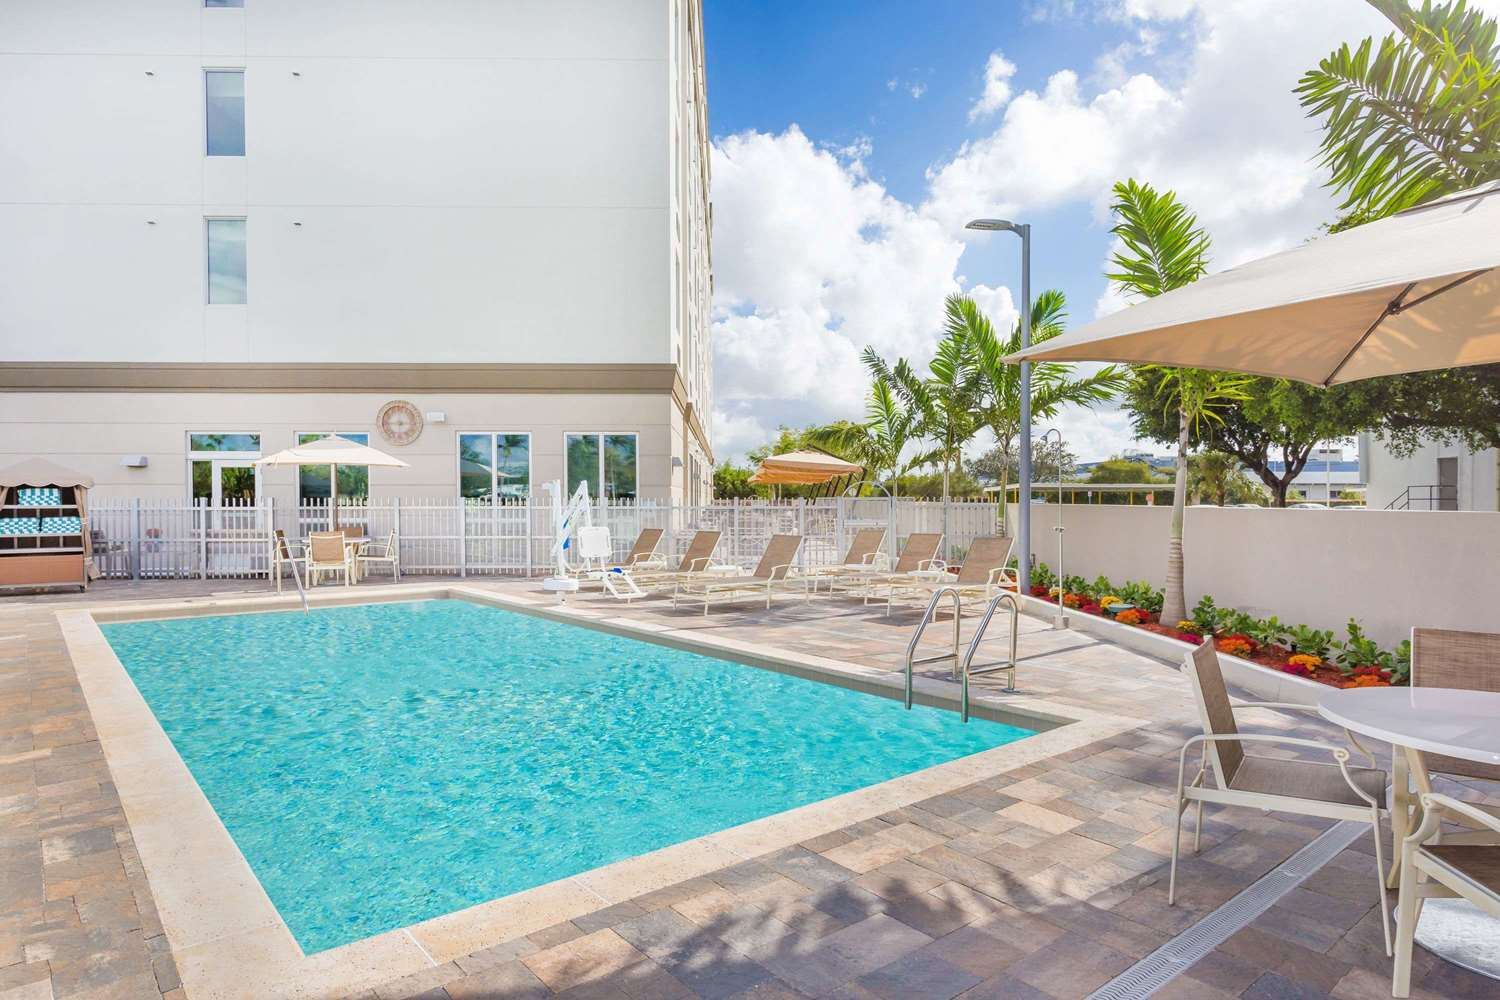 Pool - Wingate by Wyndham Hotel Miami Airport Doral